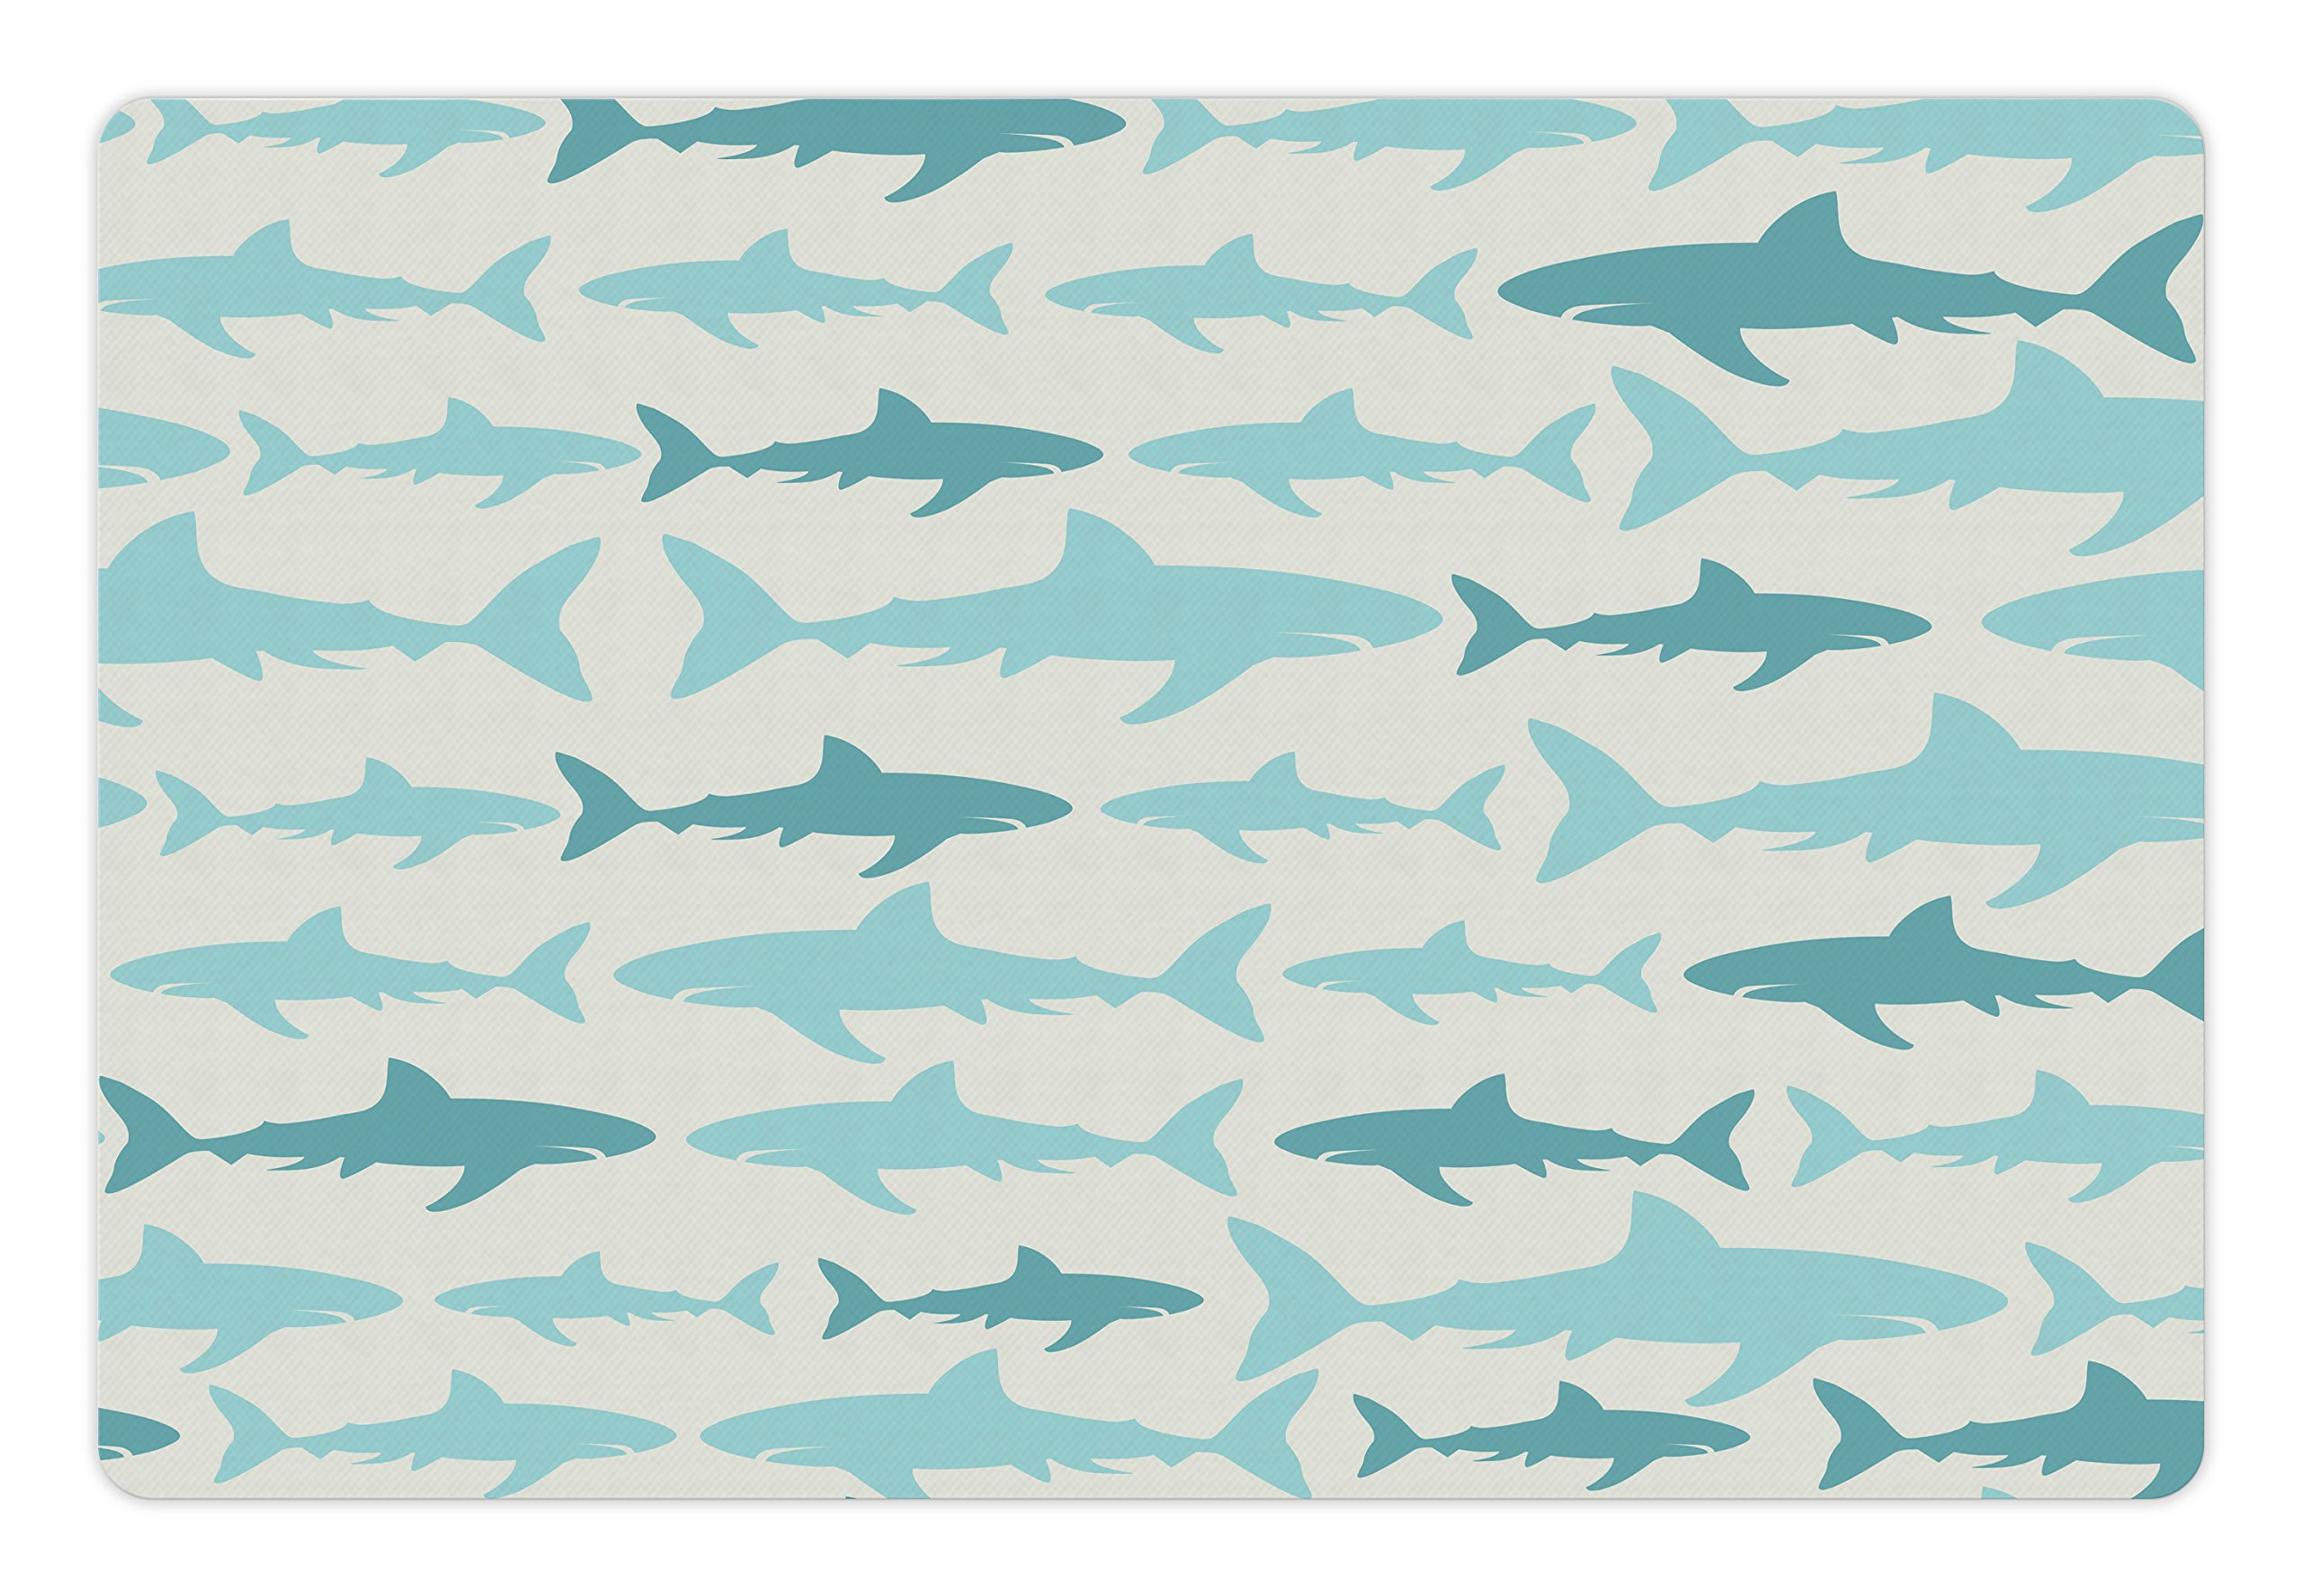 Ambesonne Sea Animals Pet Mat for Food and Water, Monochrome Shark Illustration Fashion Maritime Illustration Aquatics, Rectangle Non-Slip Rubber Mat for Dogs and Cats, Teal Turquoise Beige